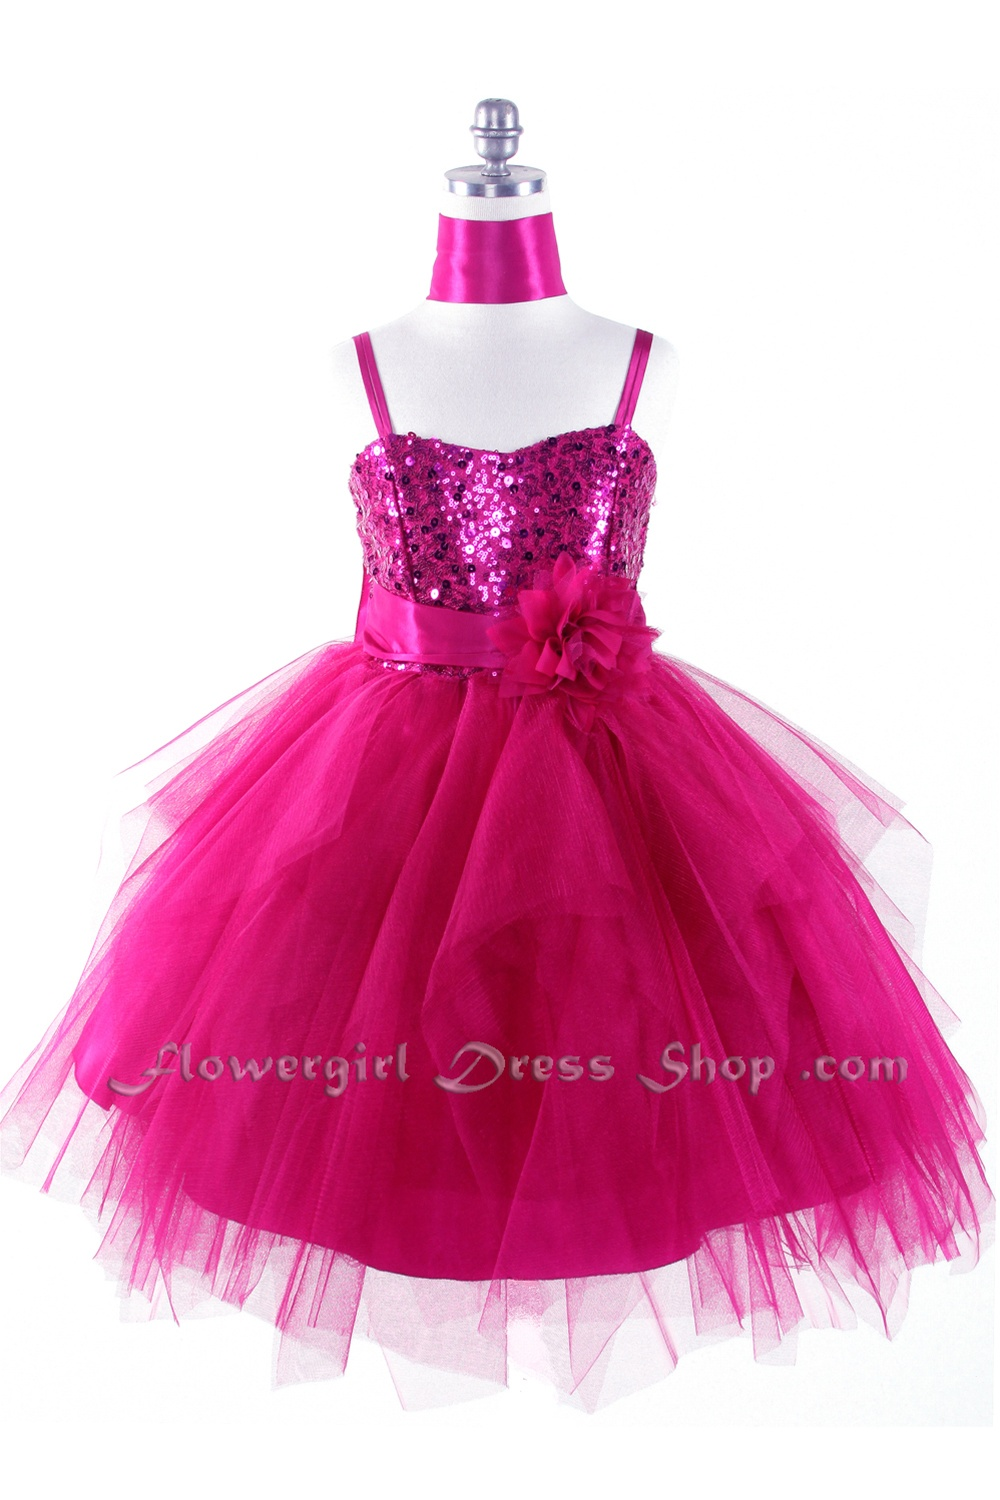 Sequined Bodice With Tulle Overlayed Flower Girl Dress